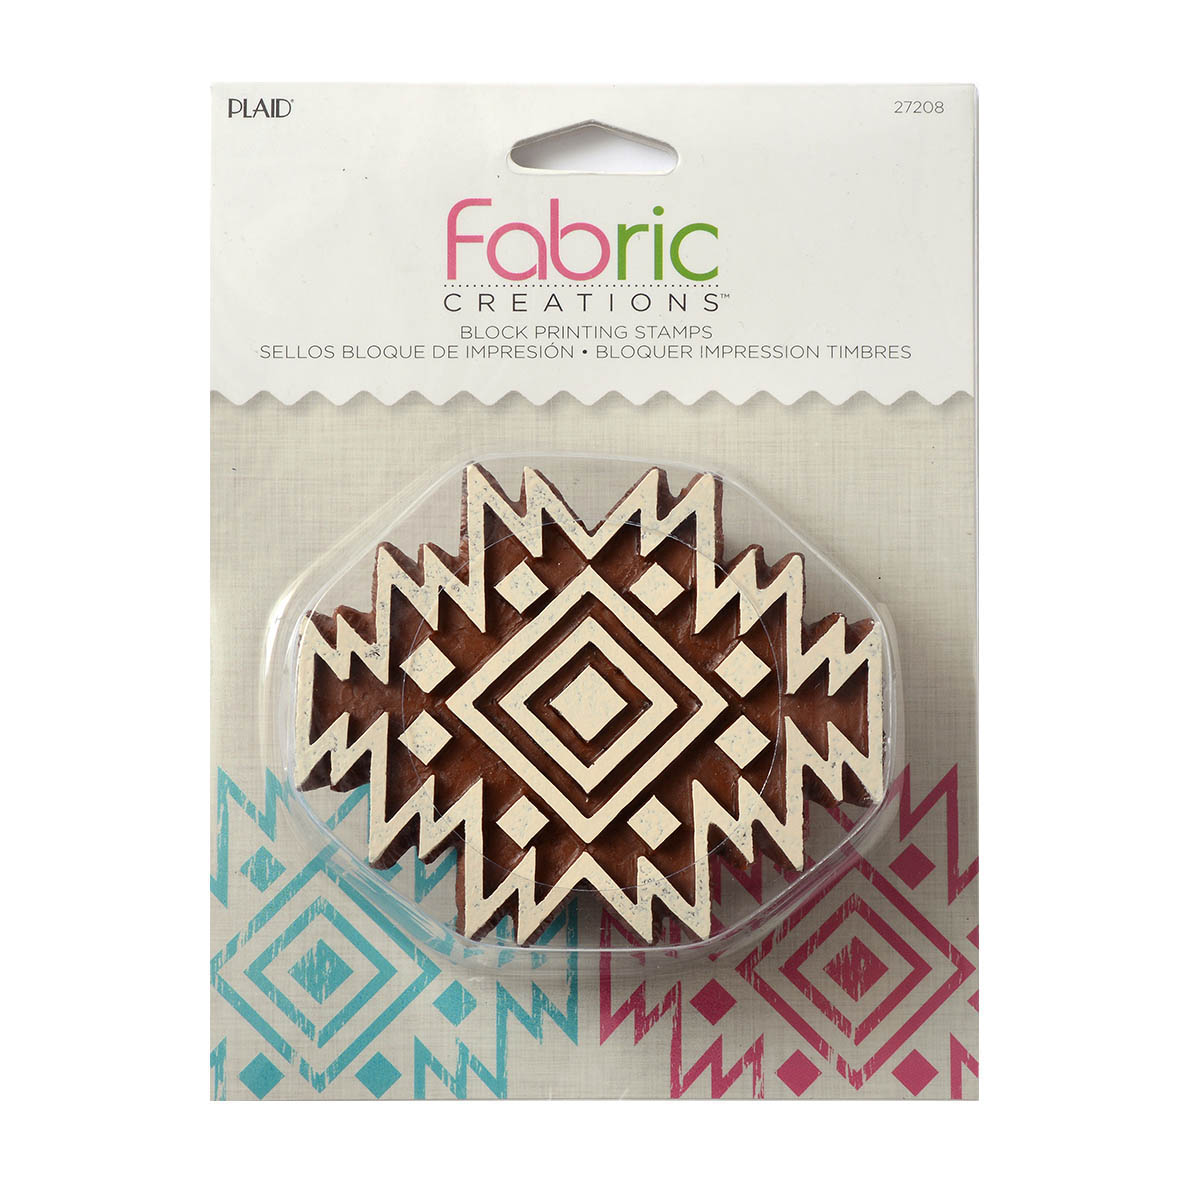 Fabric Creations™ Block Printing Stamps - Medium - Aztec Tile